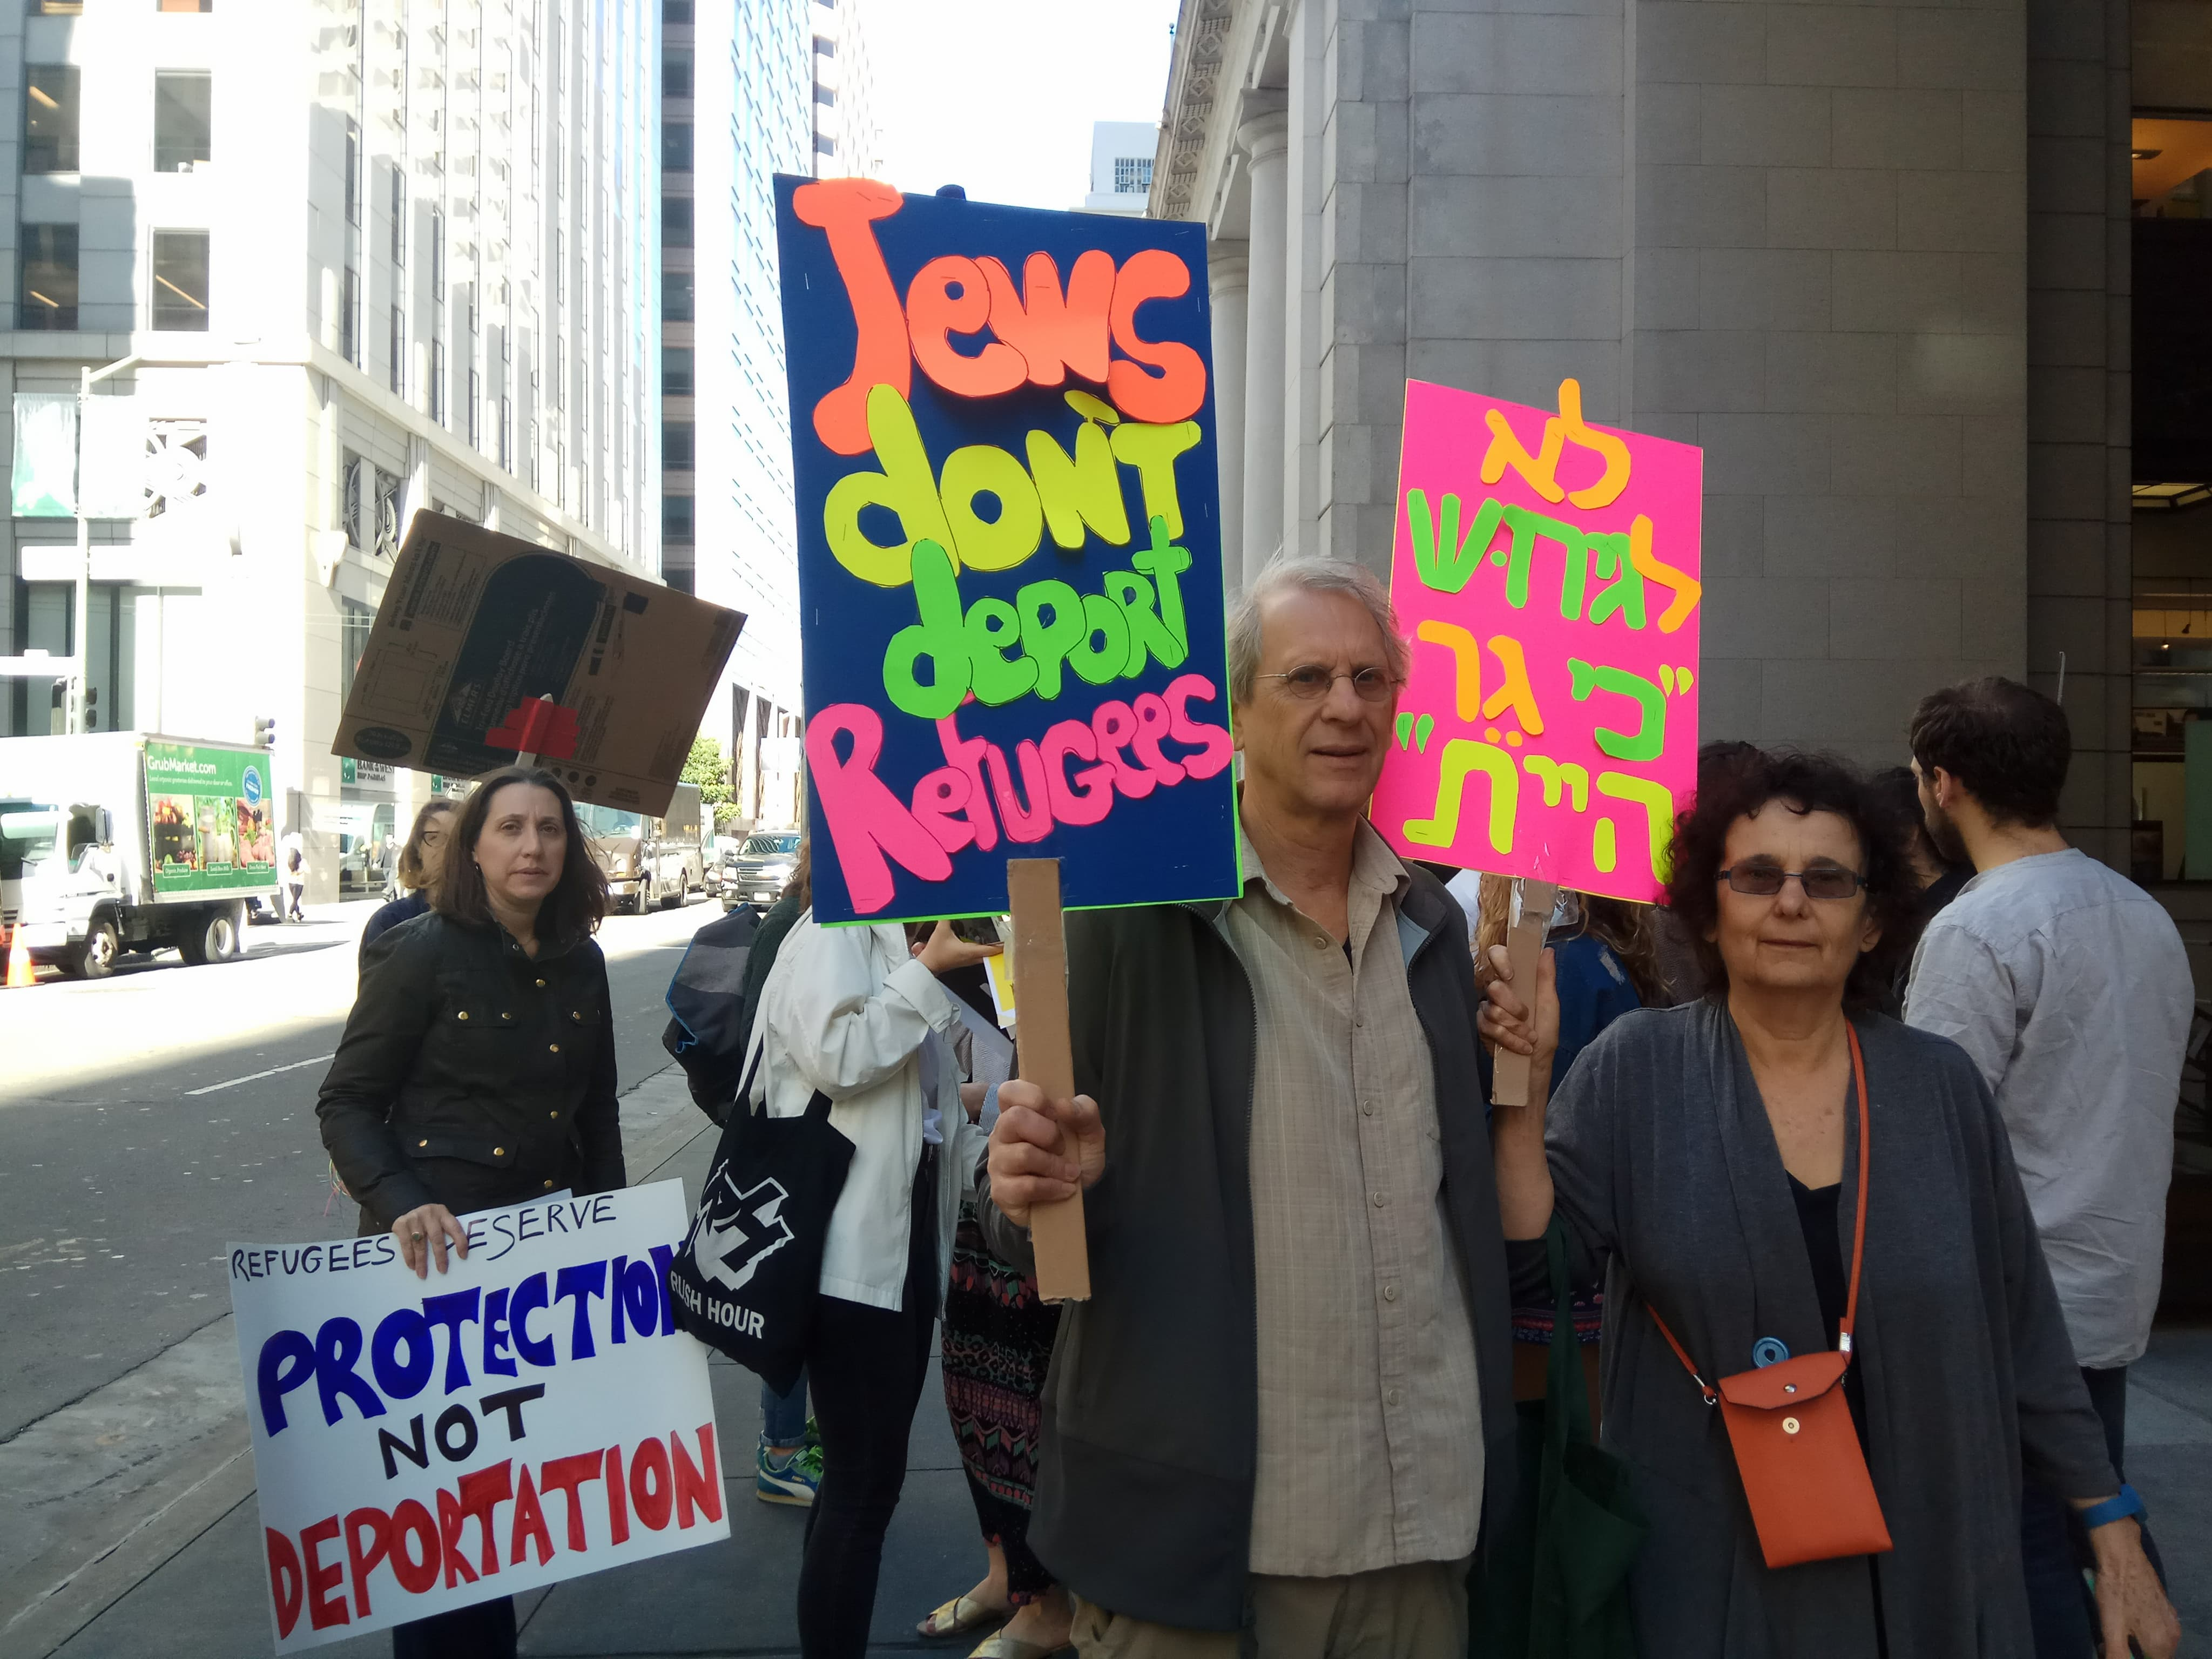 Protesters hold signs against the deportation of African refugees outside the Israeli consulate in San Francisco, February 7, 2018. (Rob Ungar)